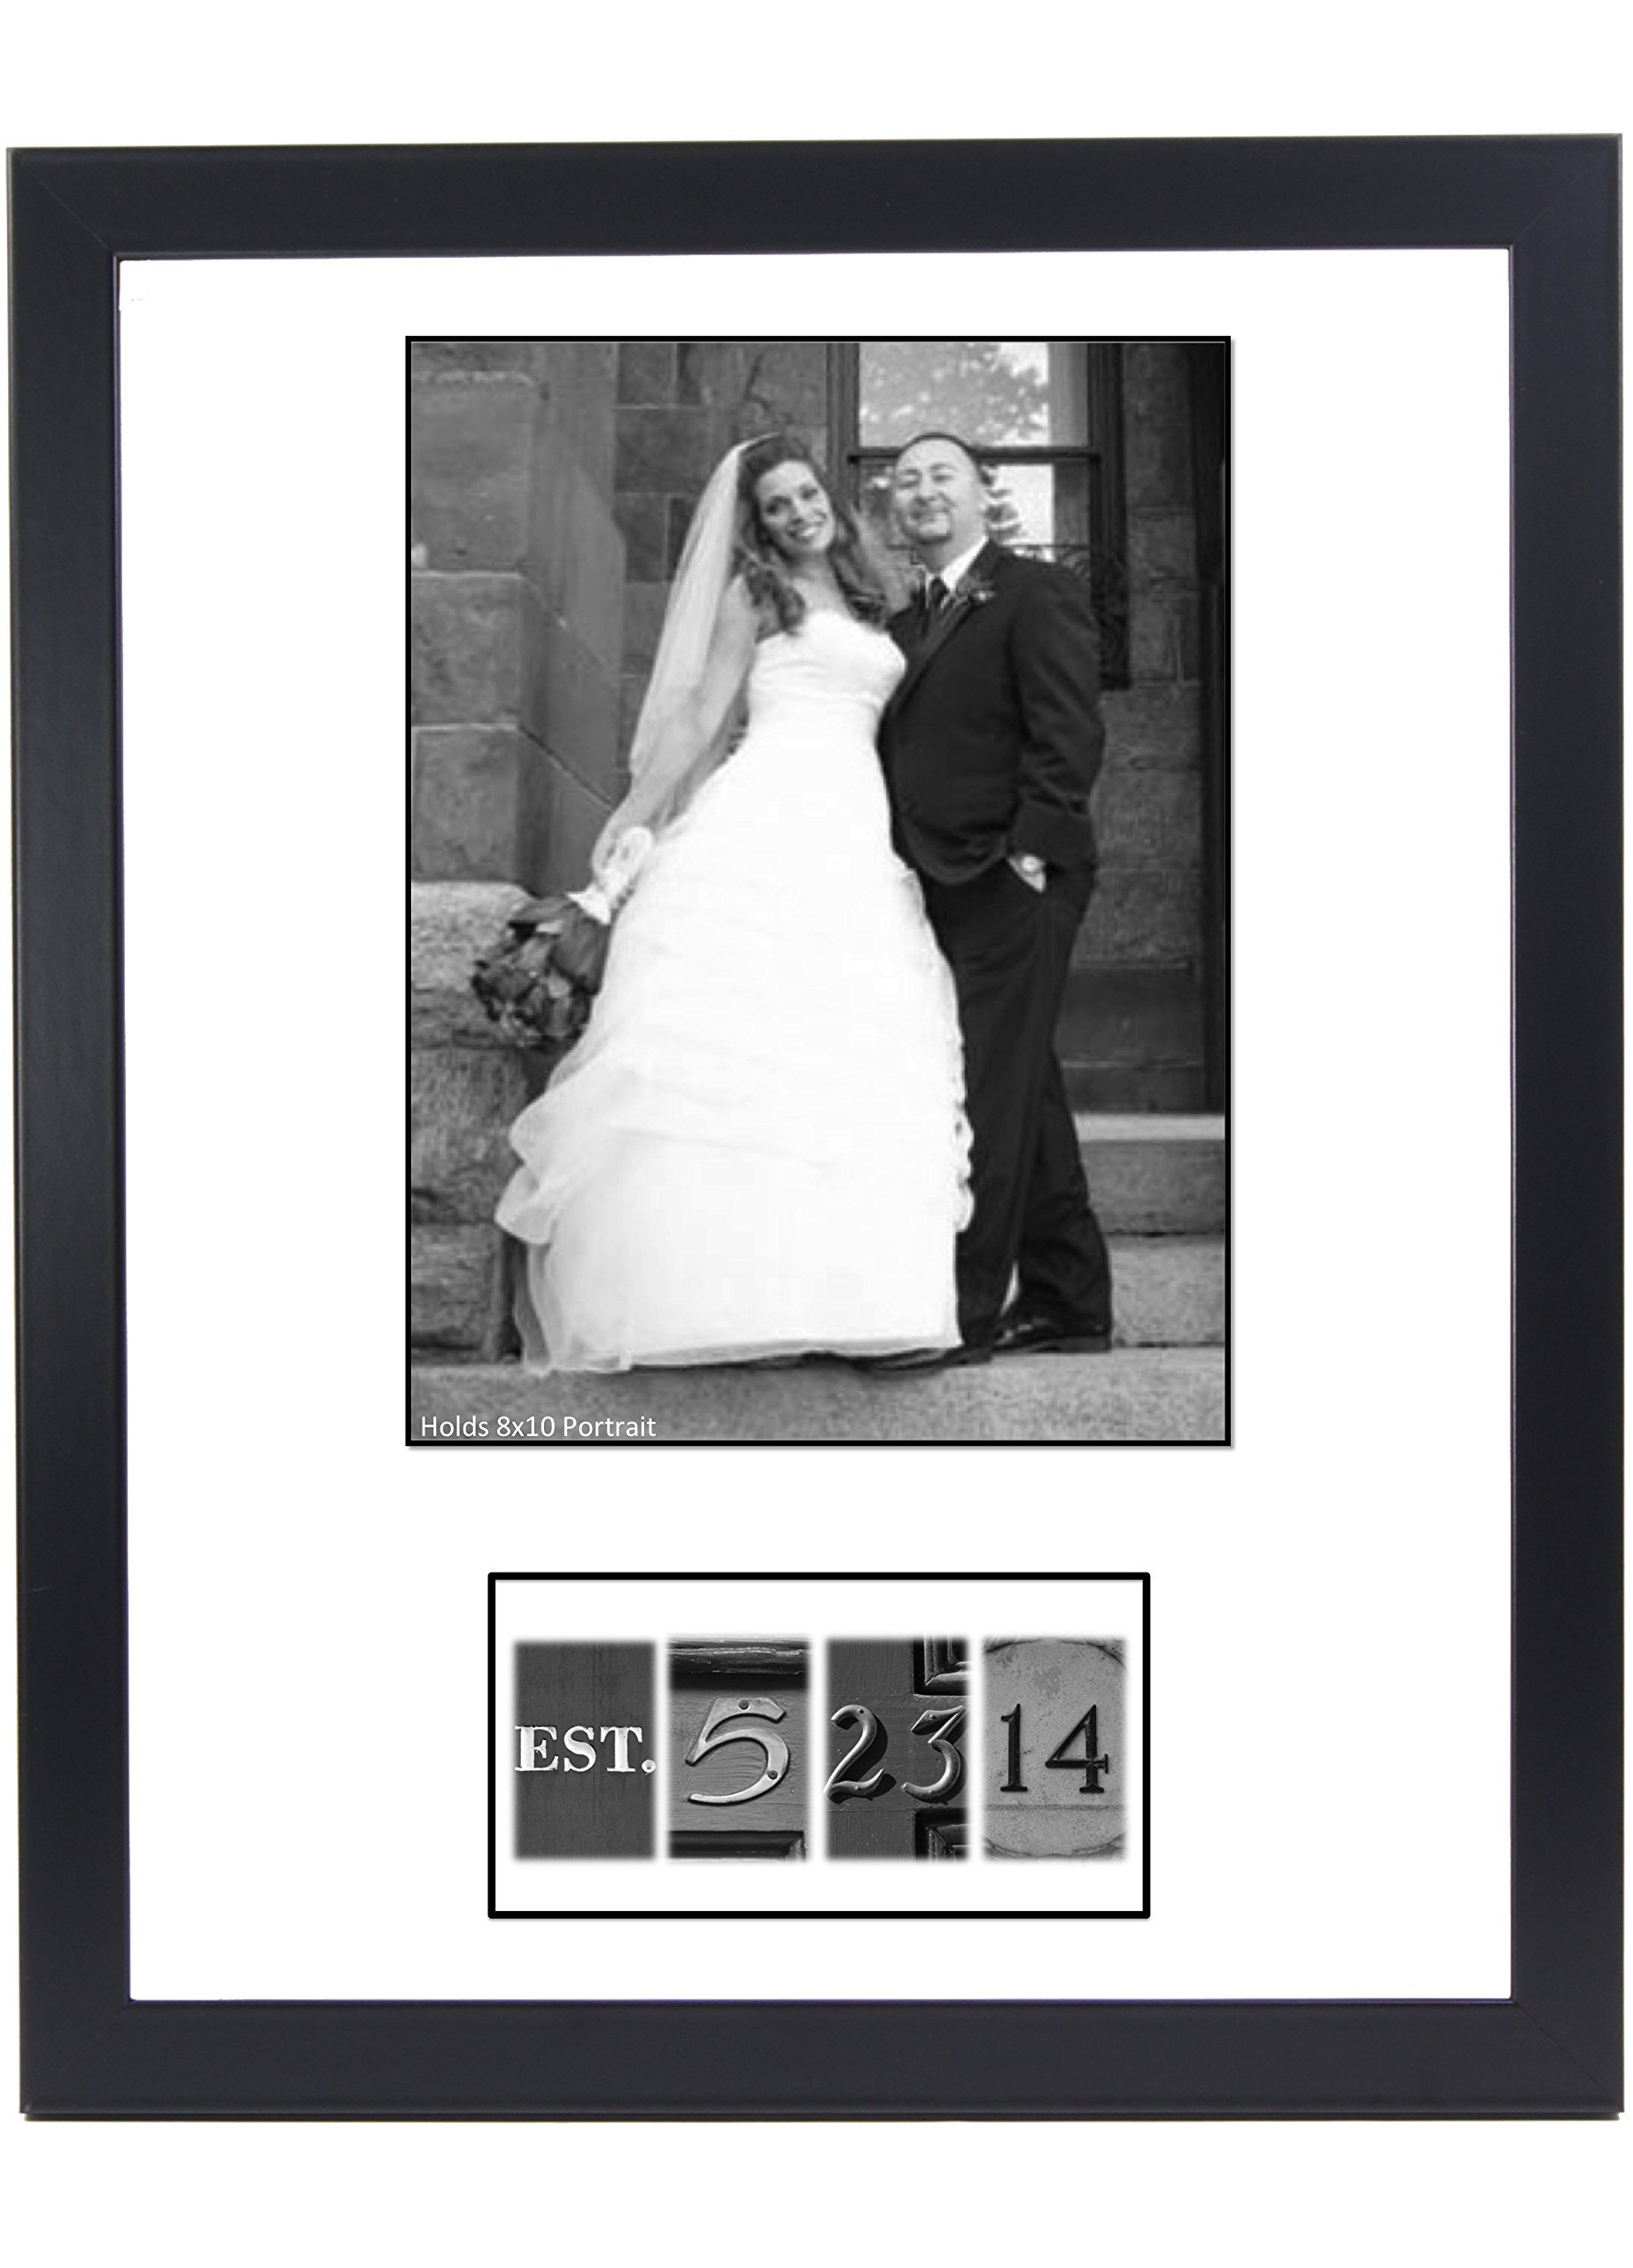 Dated Bride & Groom 8 by 10 inch Portrait Guest Book with DIY Unique Personalized Black & White Number Photographs, Cut and Tape- Including our 16 by 20 inch Frame w/ Hanger by Totally Numbered (Image #1)